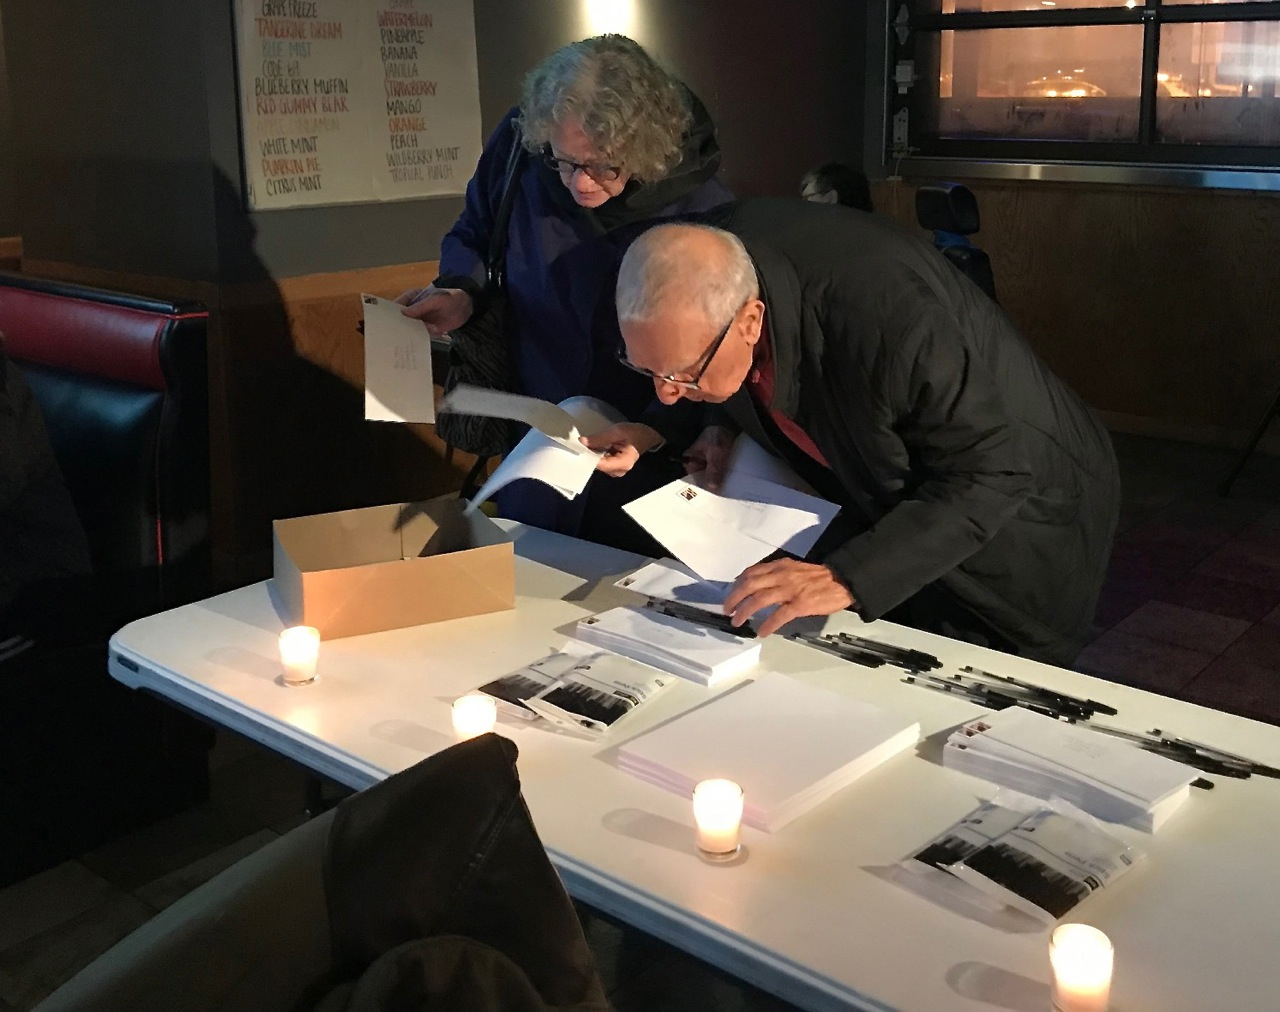 Supporters gather and write letters in support of Adi